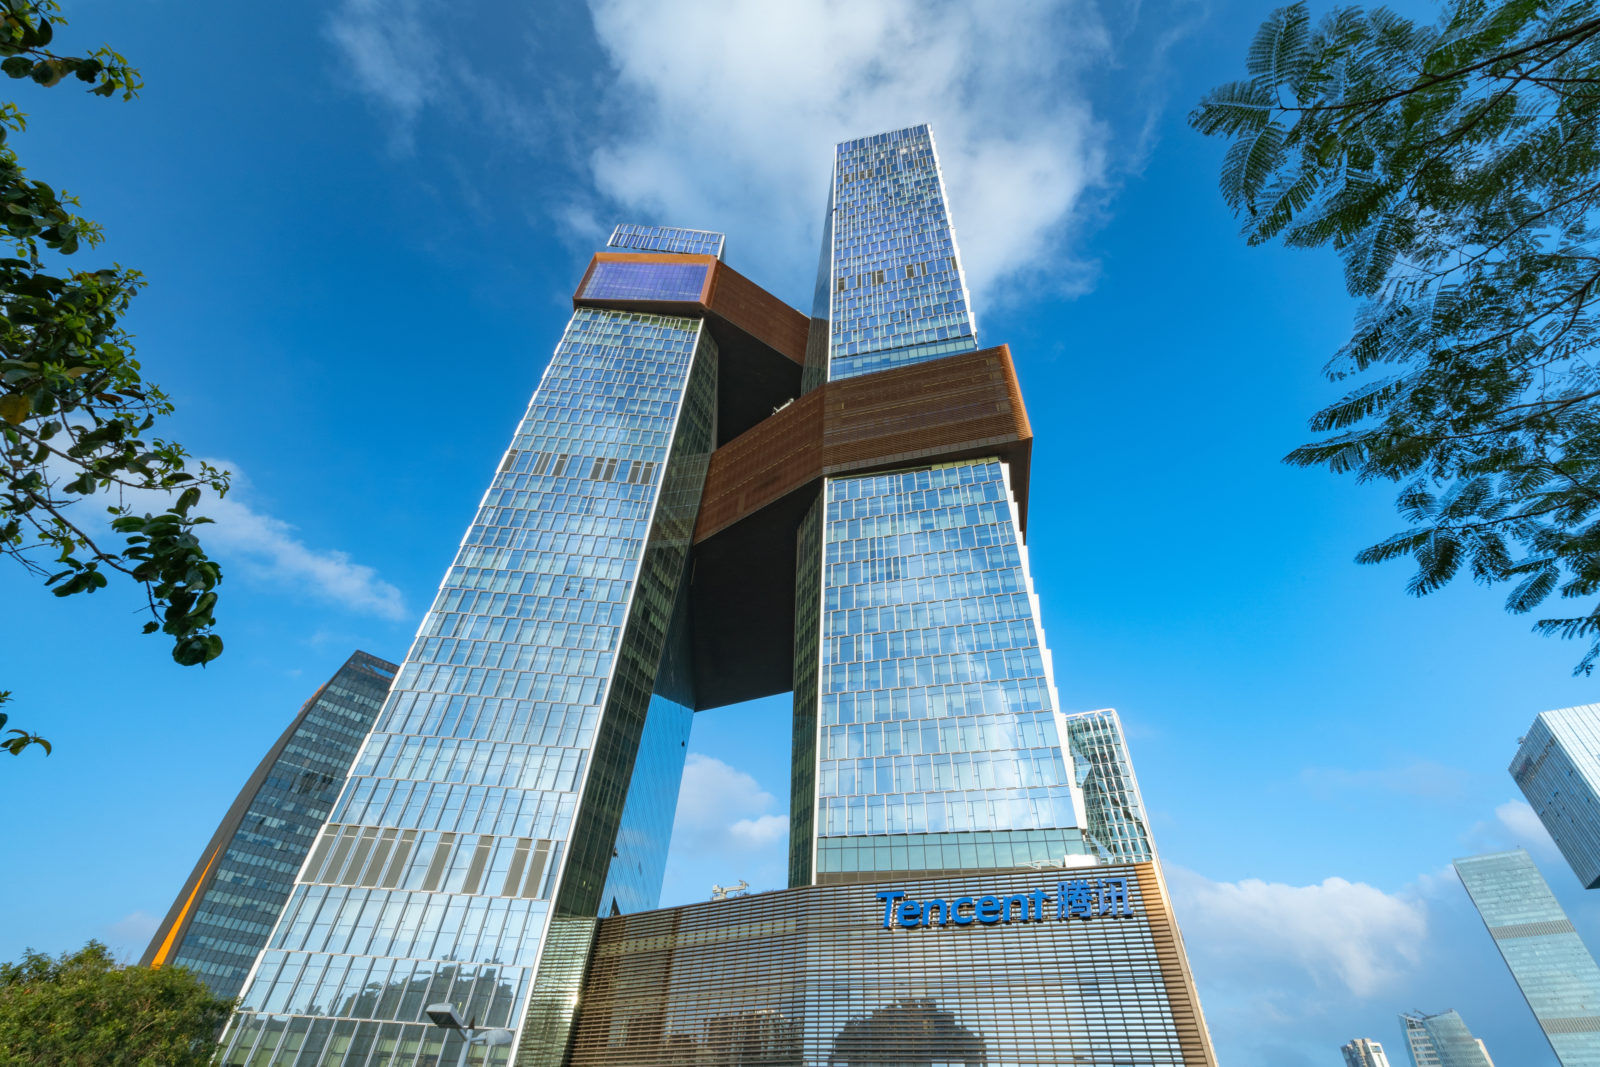 Tencent Towers in Shenzhen